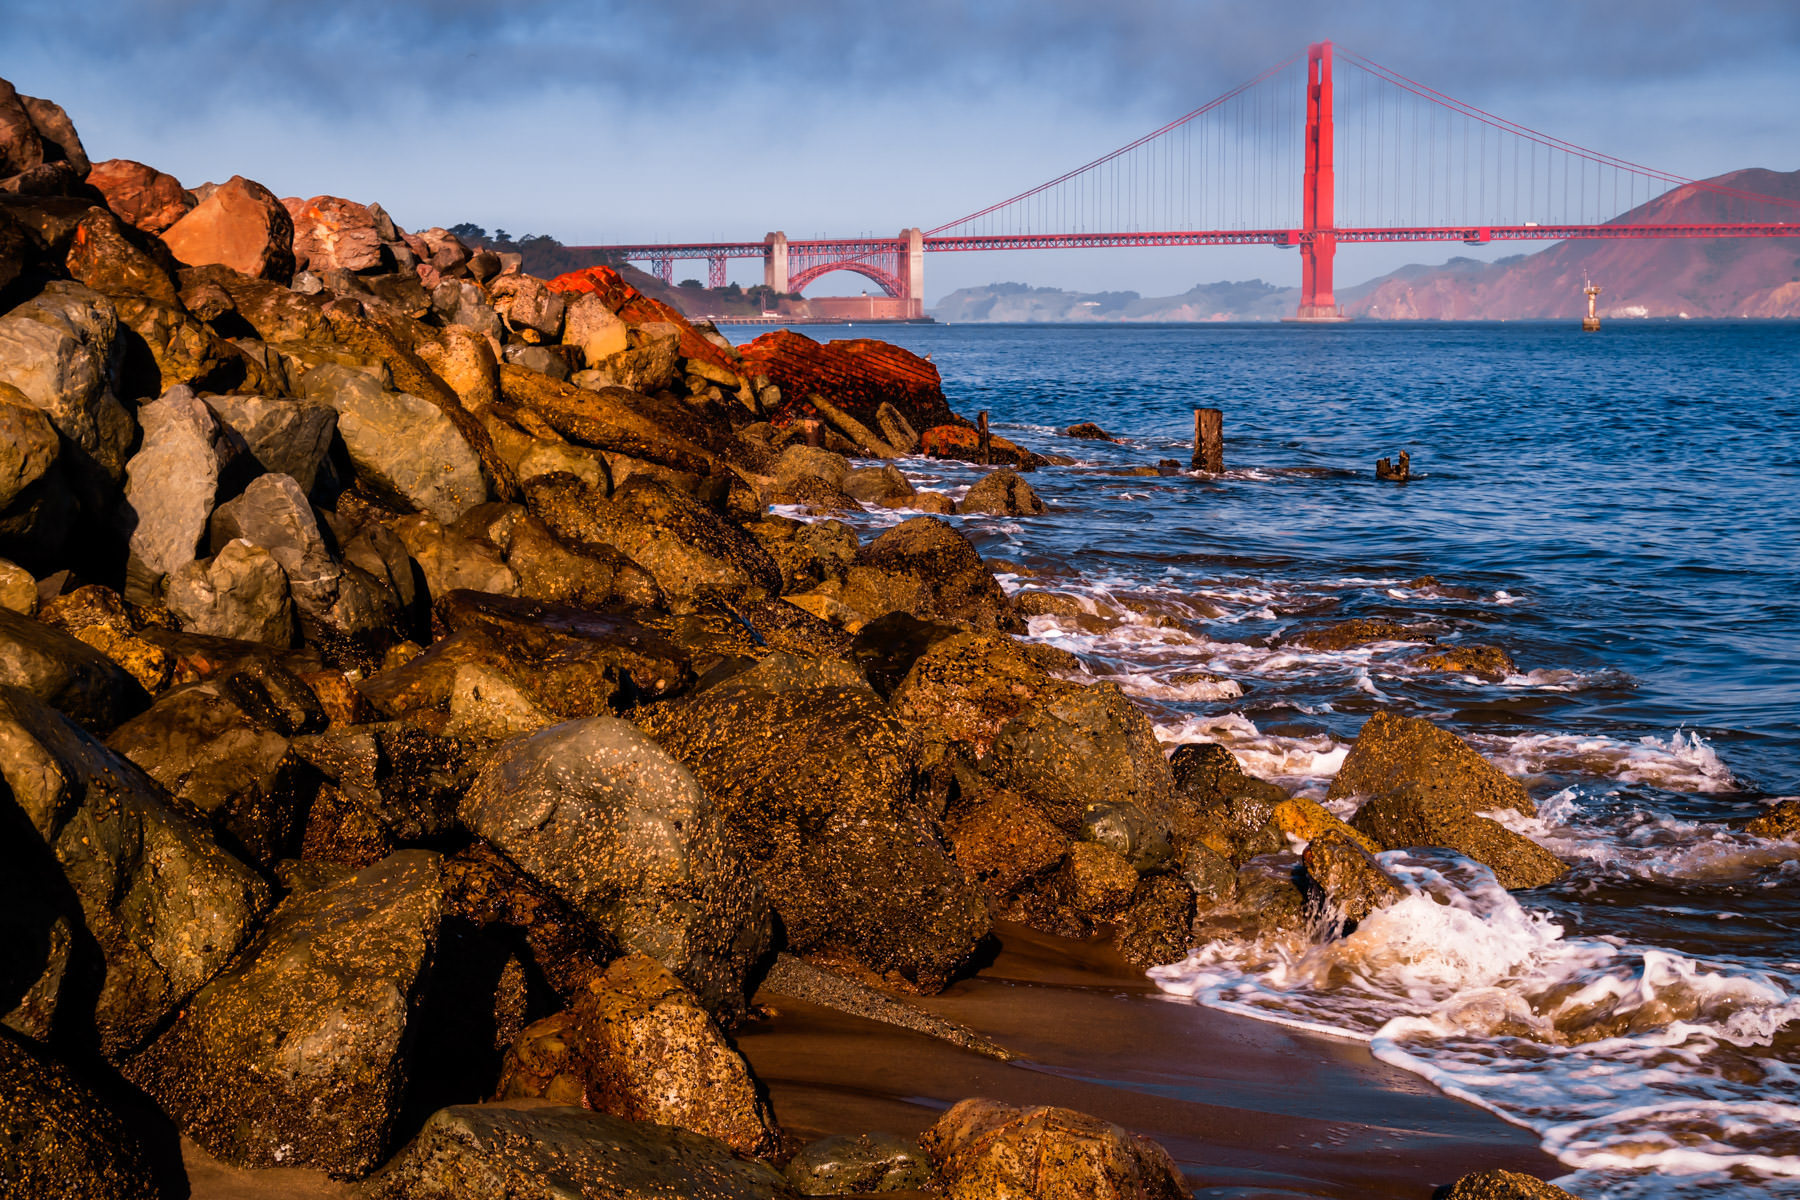 The San Francisco Bay surf laps at rocks on the beach at Crissy Field as the Golden Gate Bridge rises in the distance.